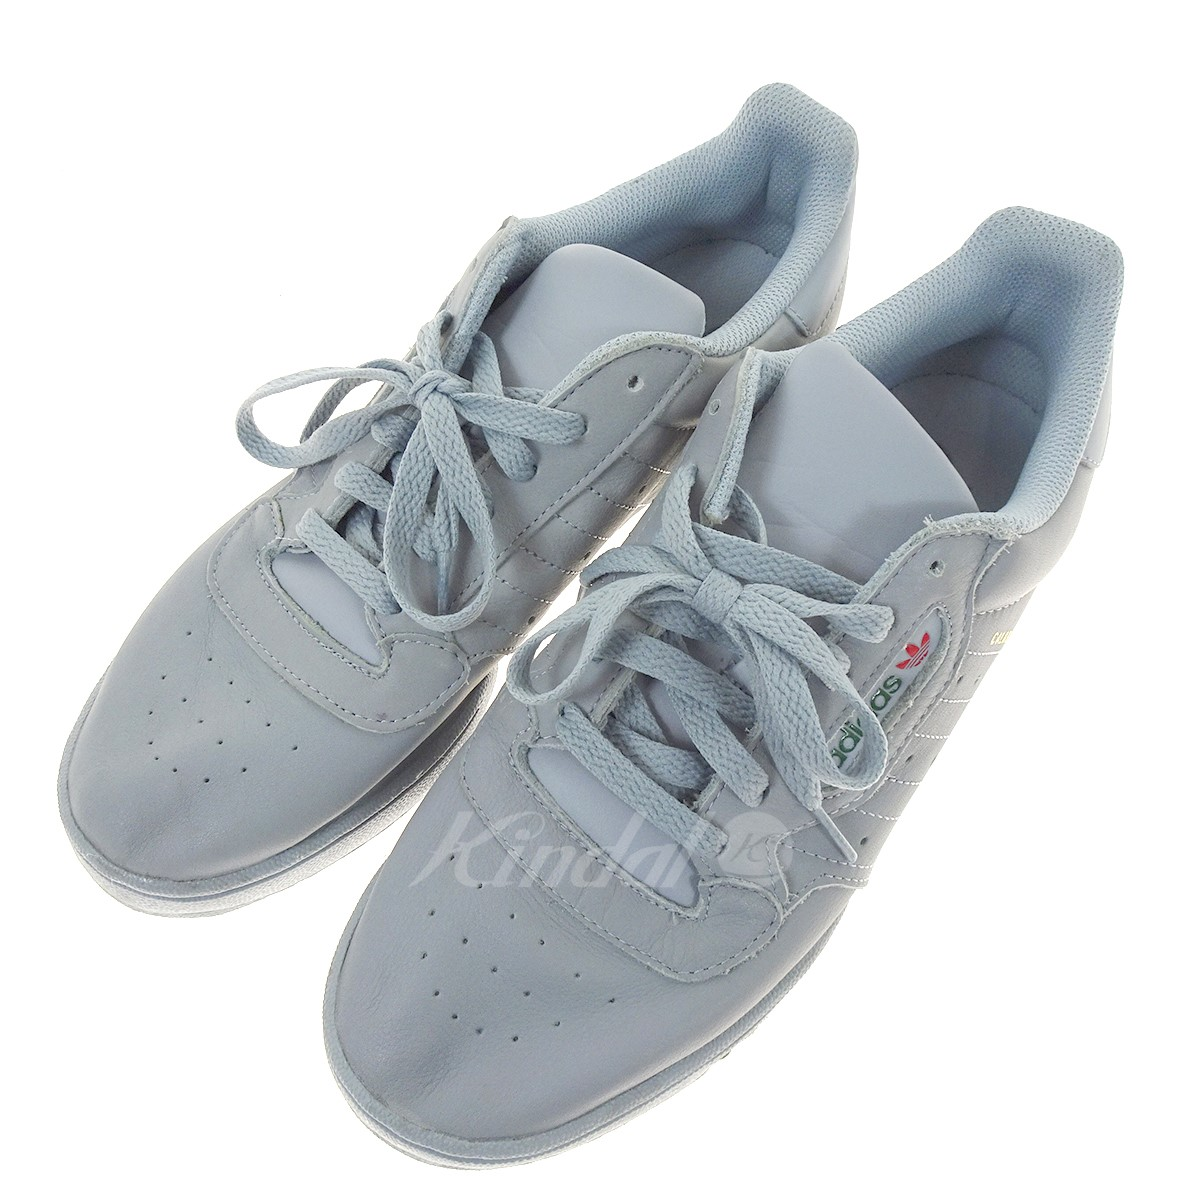 bcf337a323cd8 adidas Originals YEEZY POWER PHASE low-frequency cut sneakers CG6422 gray  size  27. 0 (Adidas original)